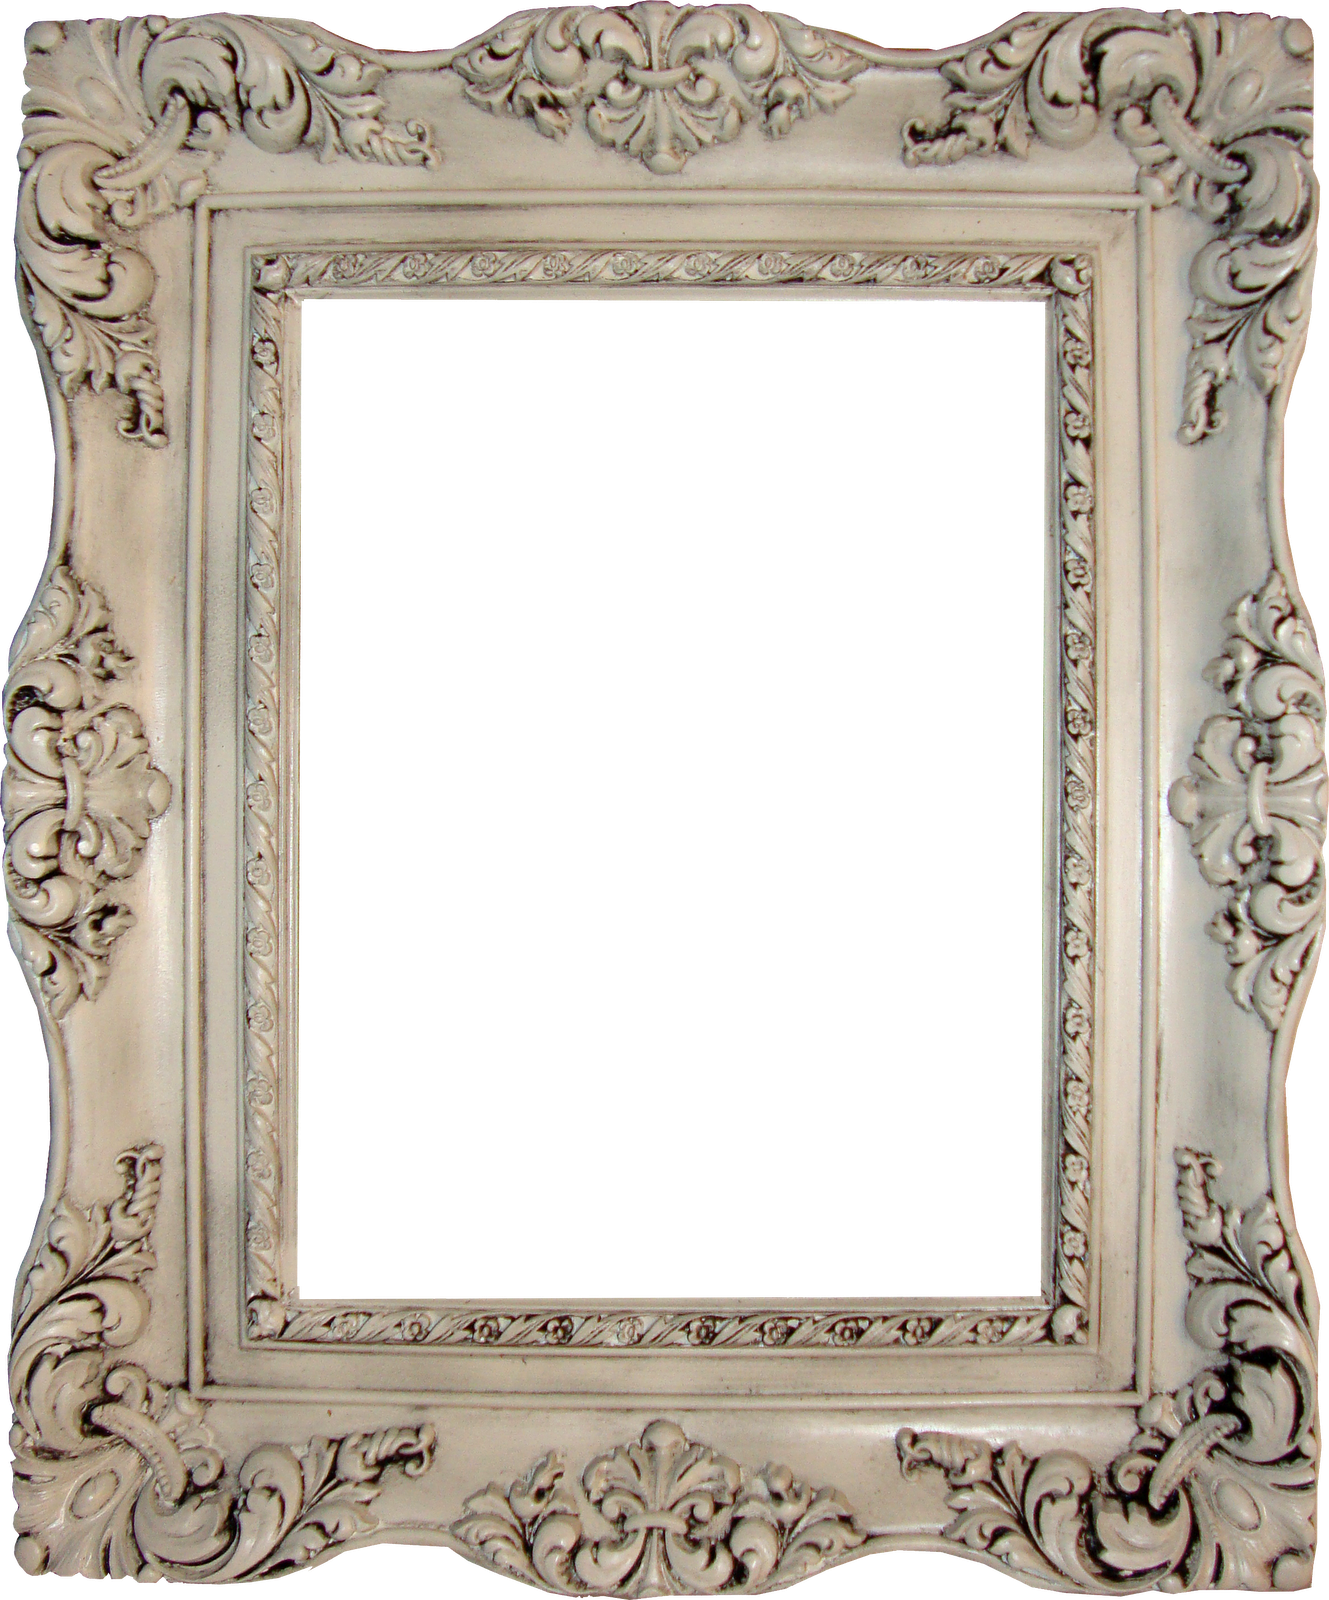 Picture framers